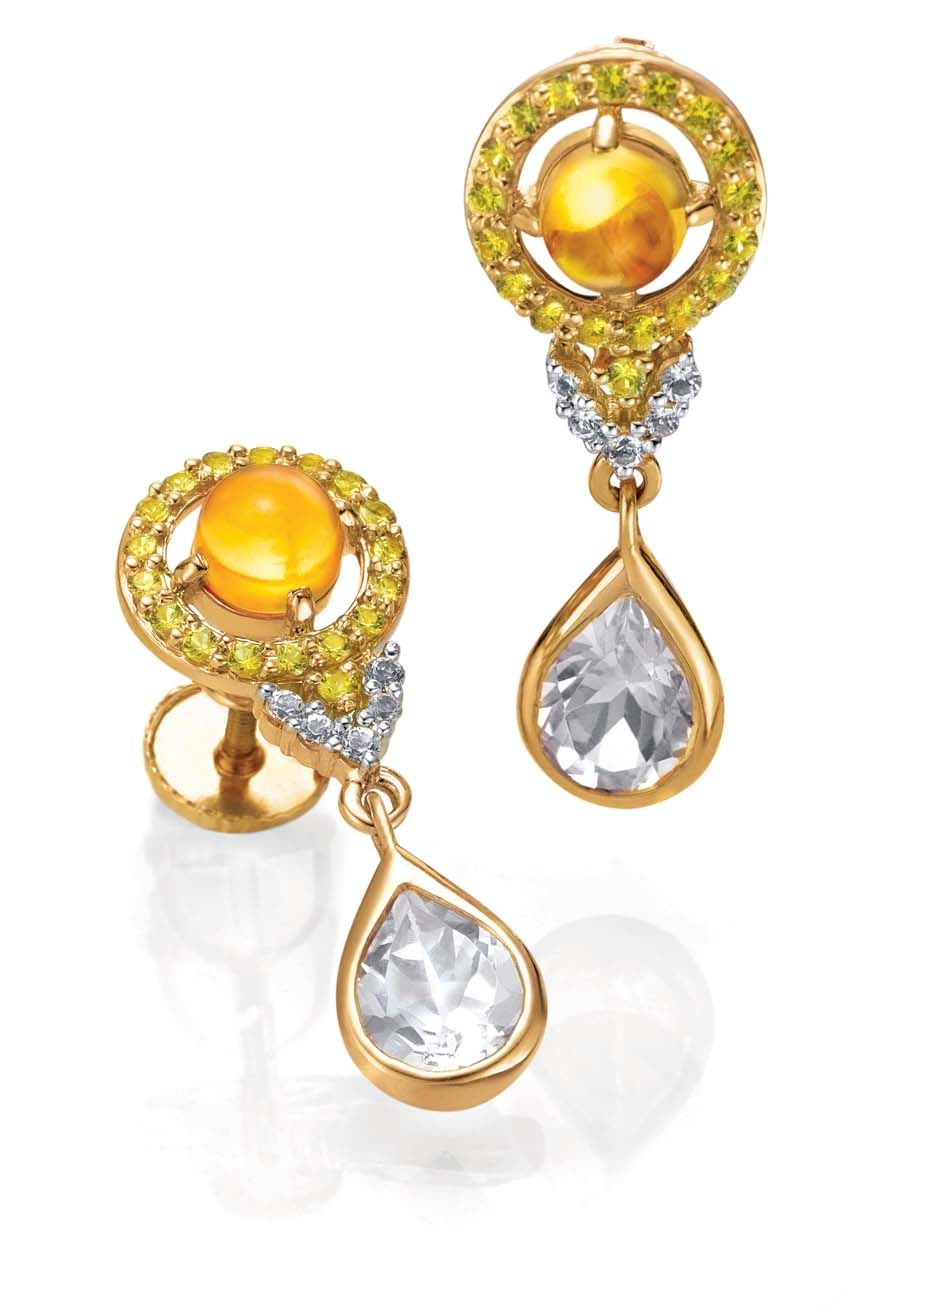 Tanishq IVA 2 collection gold and diamond drop earrings with coloured stones.